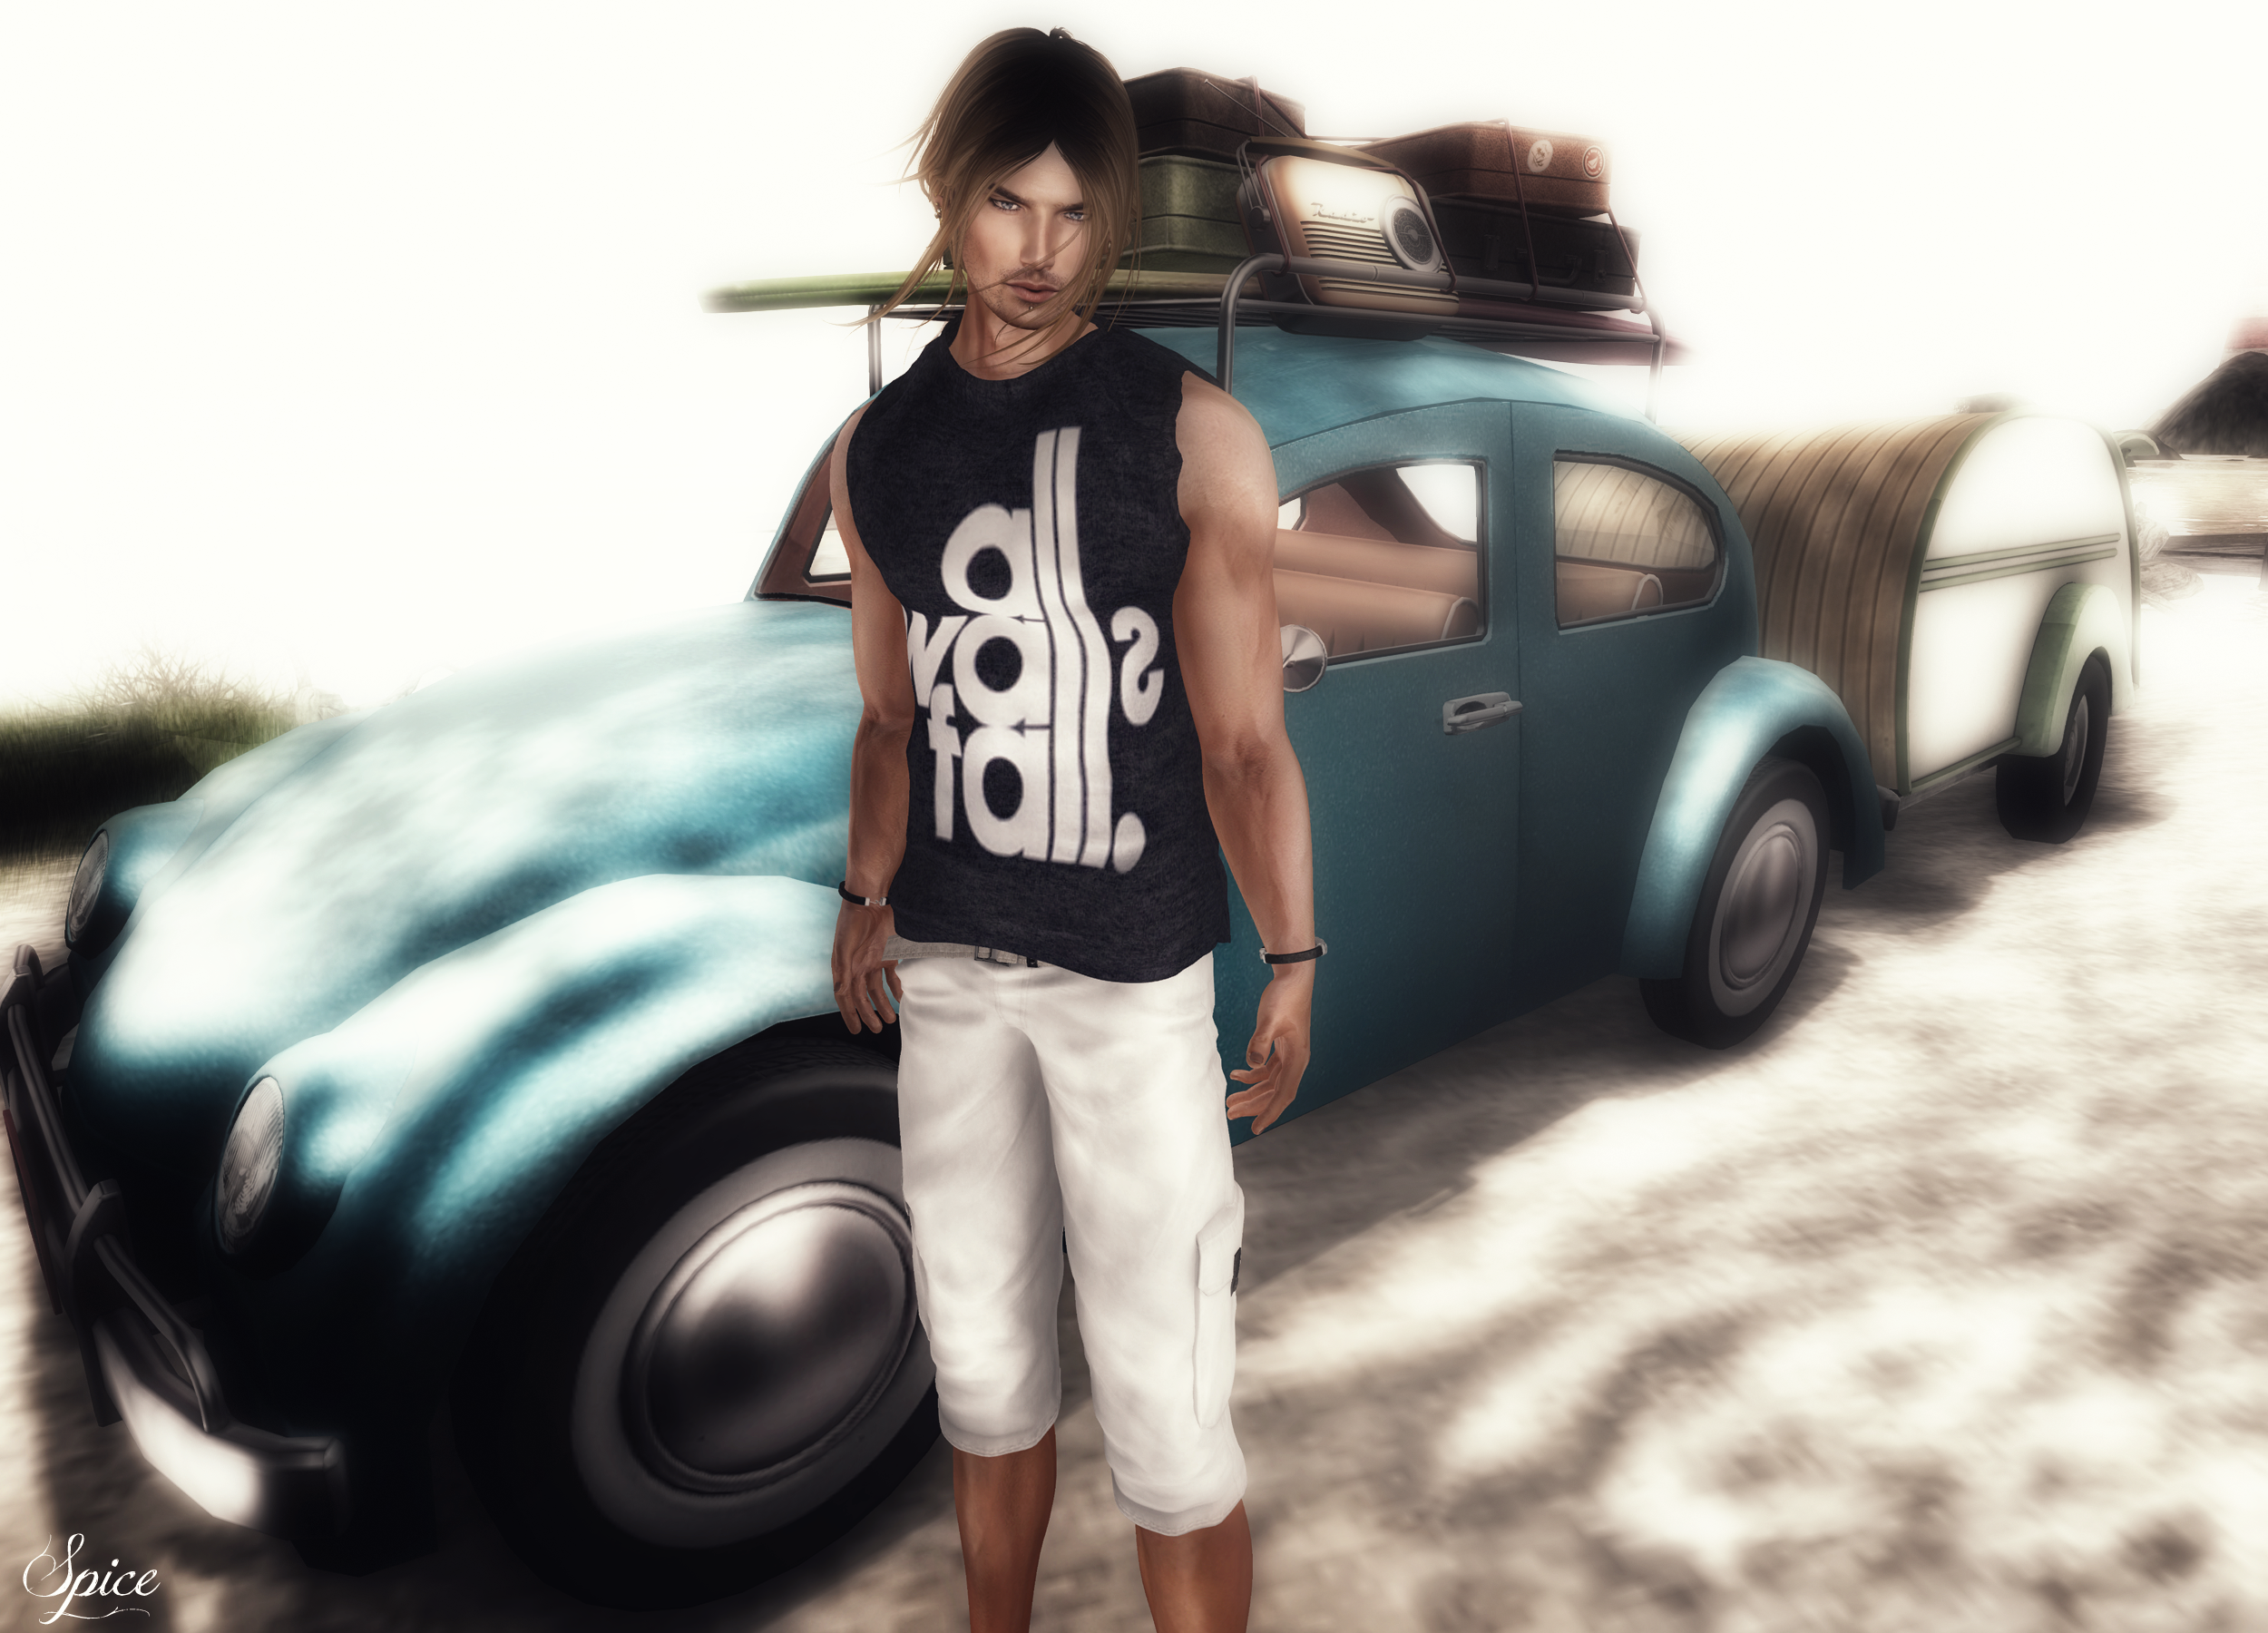 Spice wearing FashionNatic Duster Shorts Pants Egoisme EXMACHINA Sleeveless T-Shirt PetroFF Savage Bracelet and Grafica Poses Pendroni Dau pose @ MOM